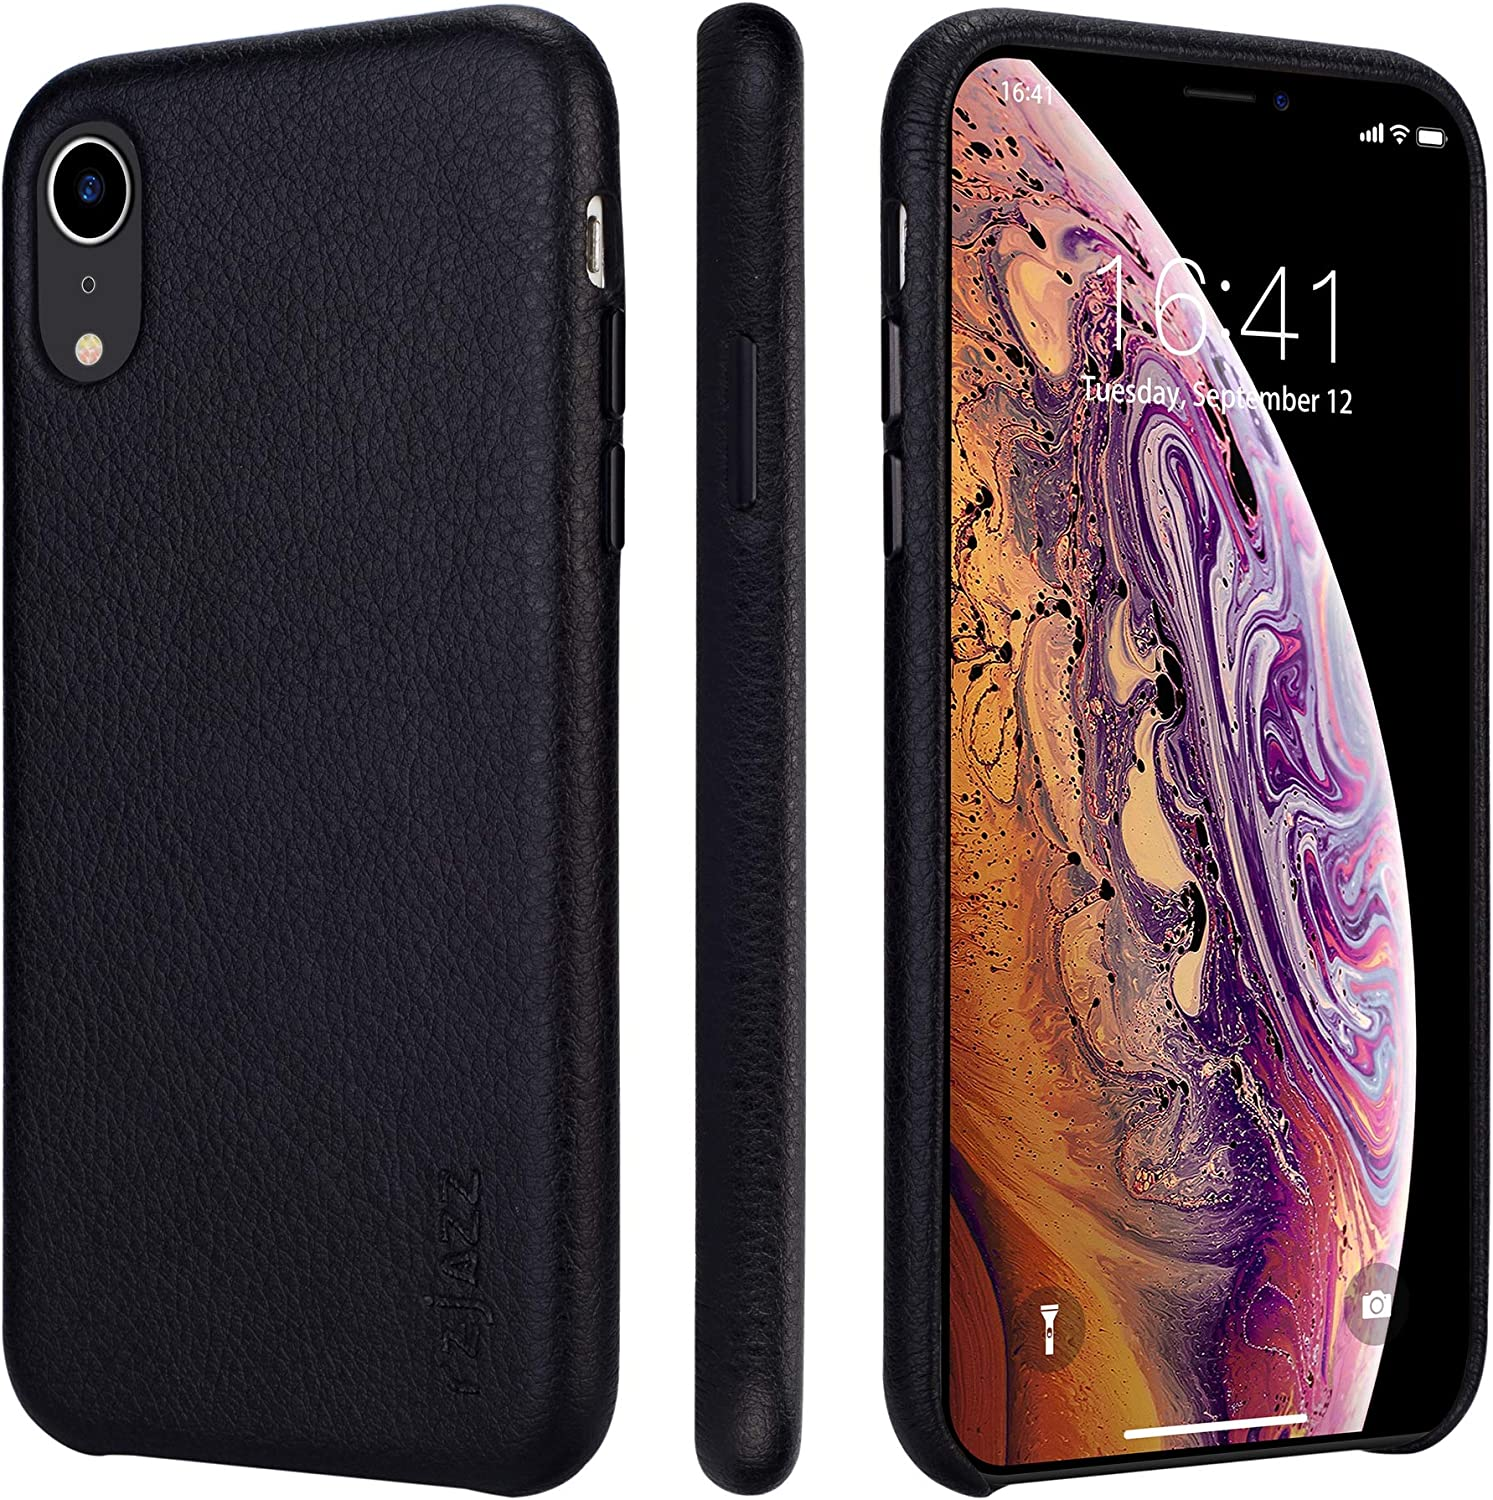 rejazz iPhone xr Case Anti-Scratch iPhone xr Cover Genuine Leather Apple iPhone Cases for iPhone xr (6.1 Inch)(Black)